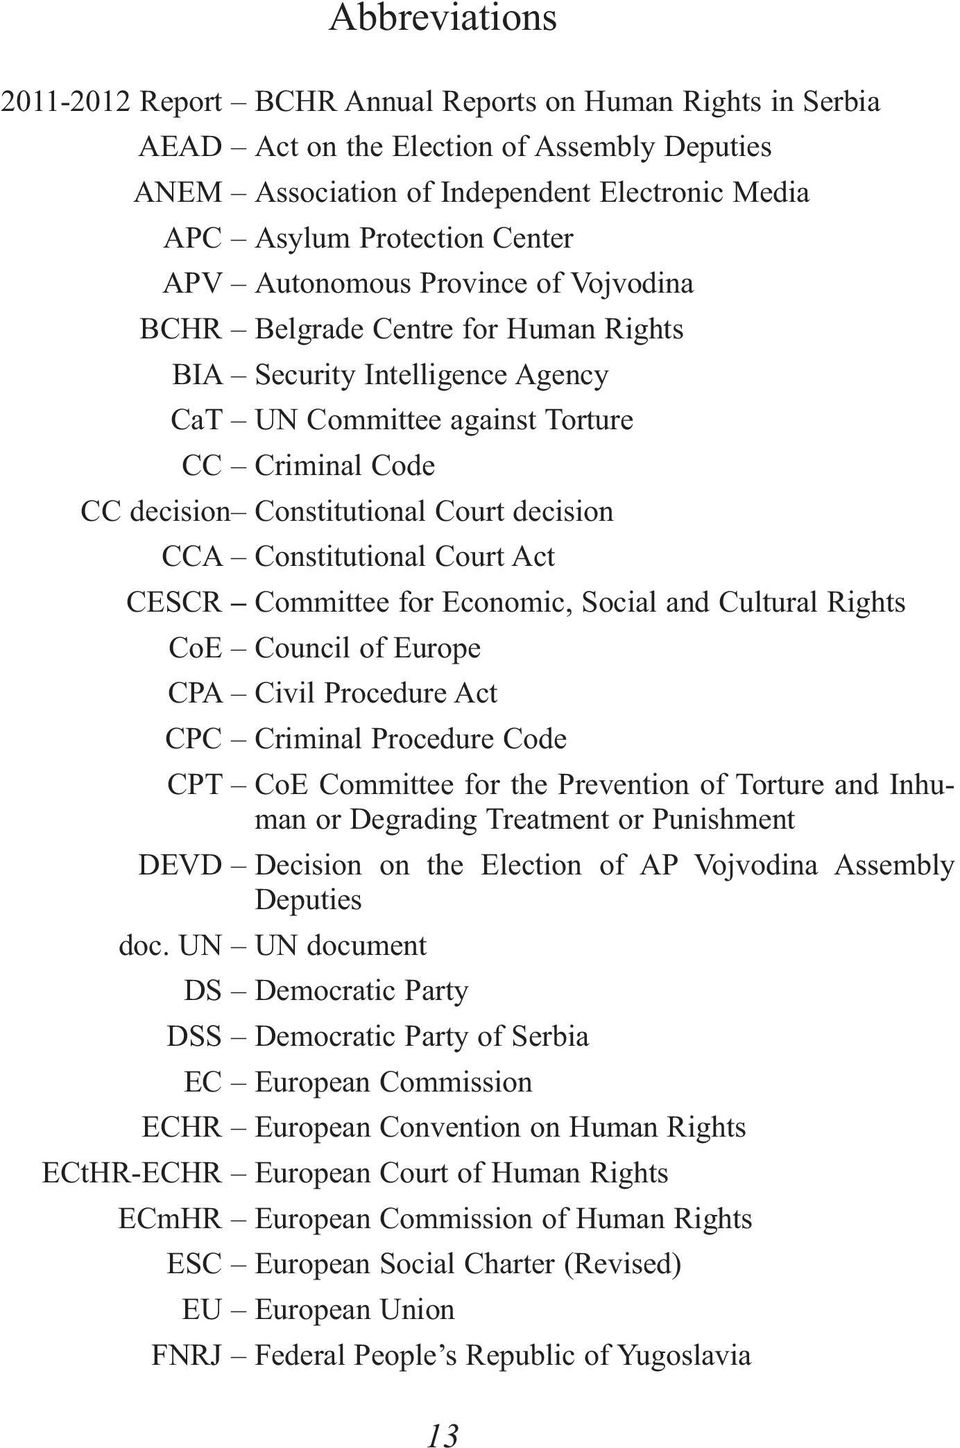 decision CCA Constitutional Court Act CESCR Committee for Economic, Social and Cultural Rights CoE Council of Europe CPA Civil Procedure Act CPC Criminal Procedure Code CPT CoE Committee for the